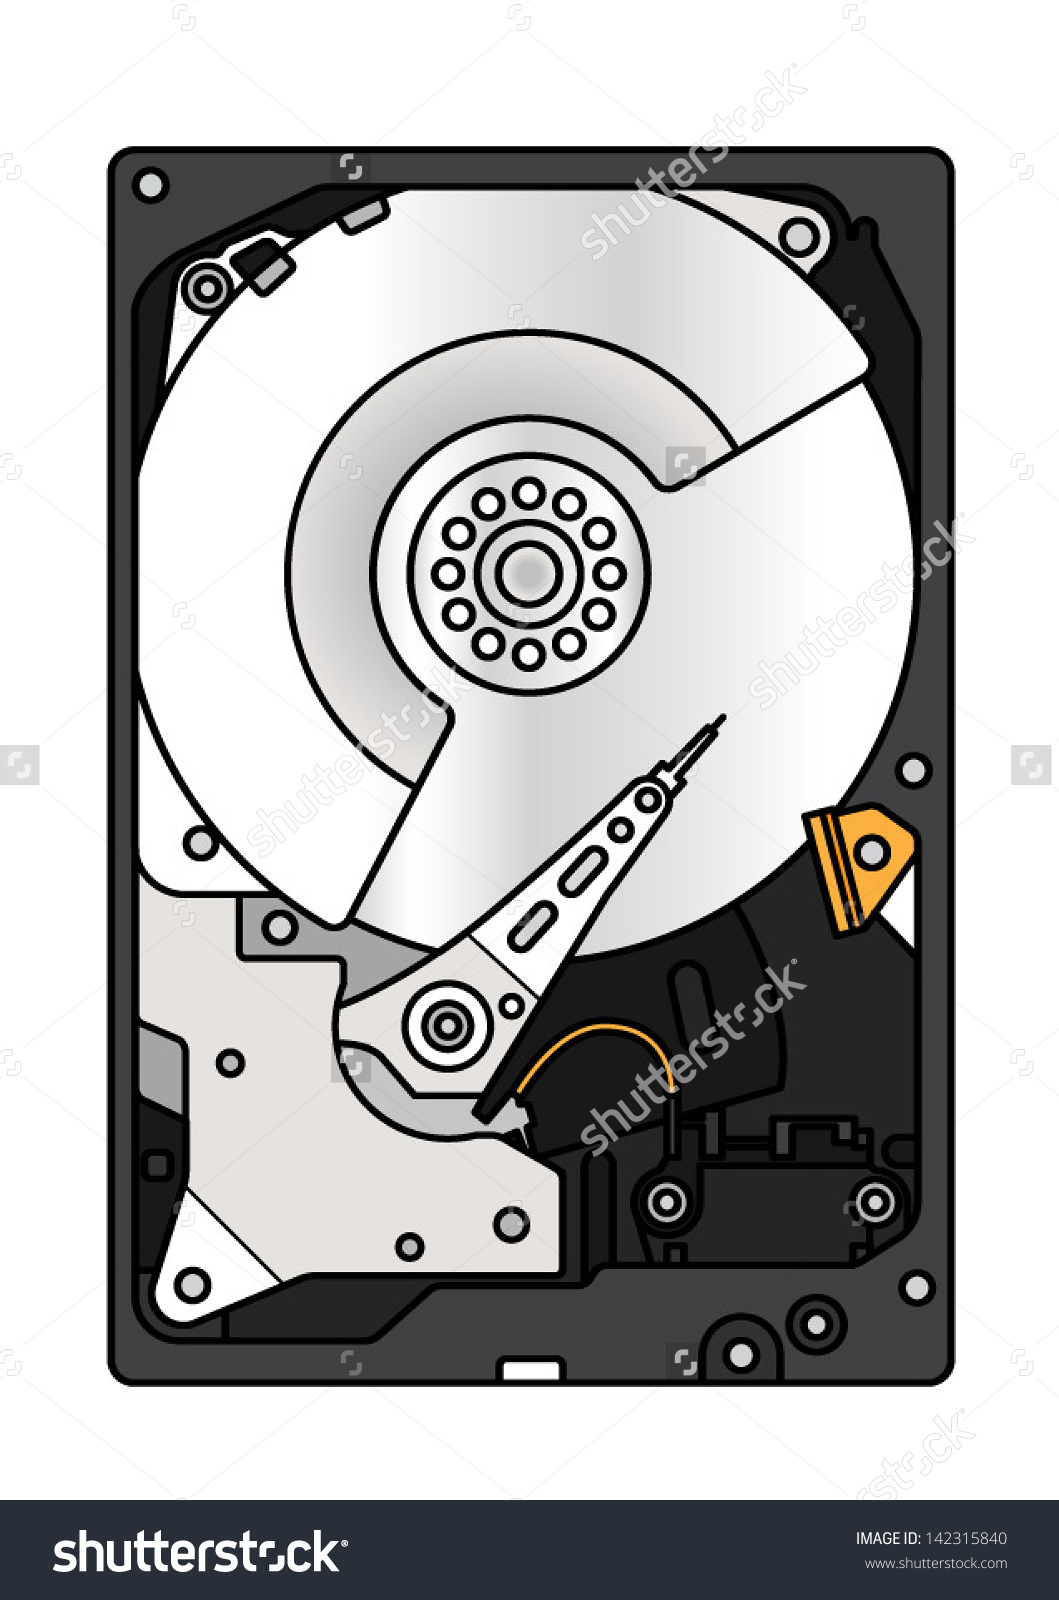 Hard Disk Drive Hdd Exposed Innards Stock Vector 142315840.